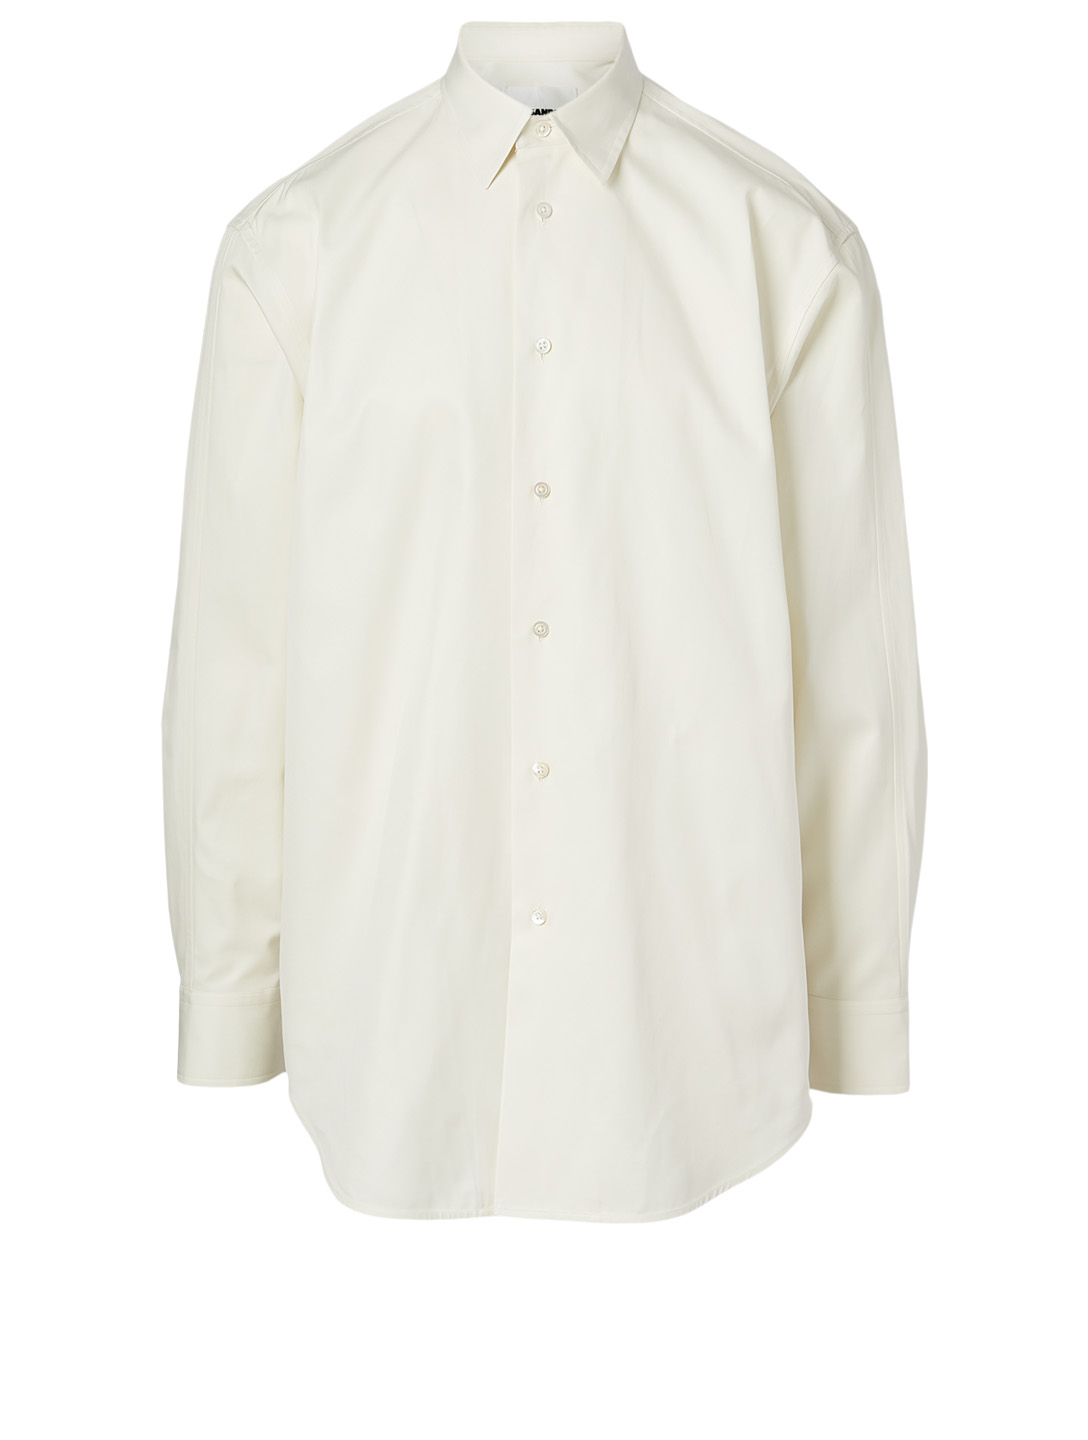 JIL SANDER Cotton Long-Sleeve T-Shirt Men's White